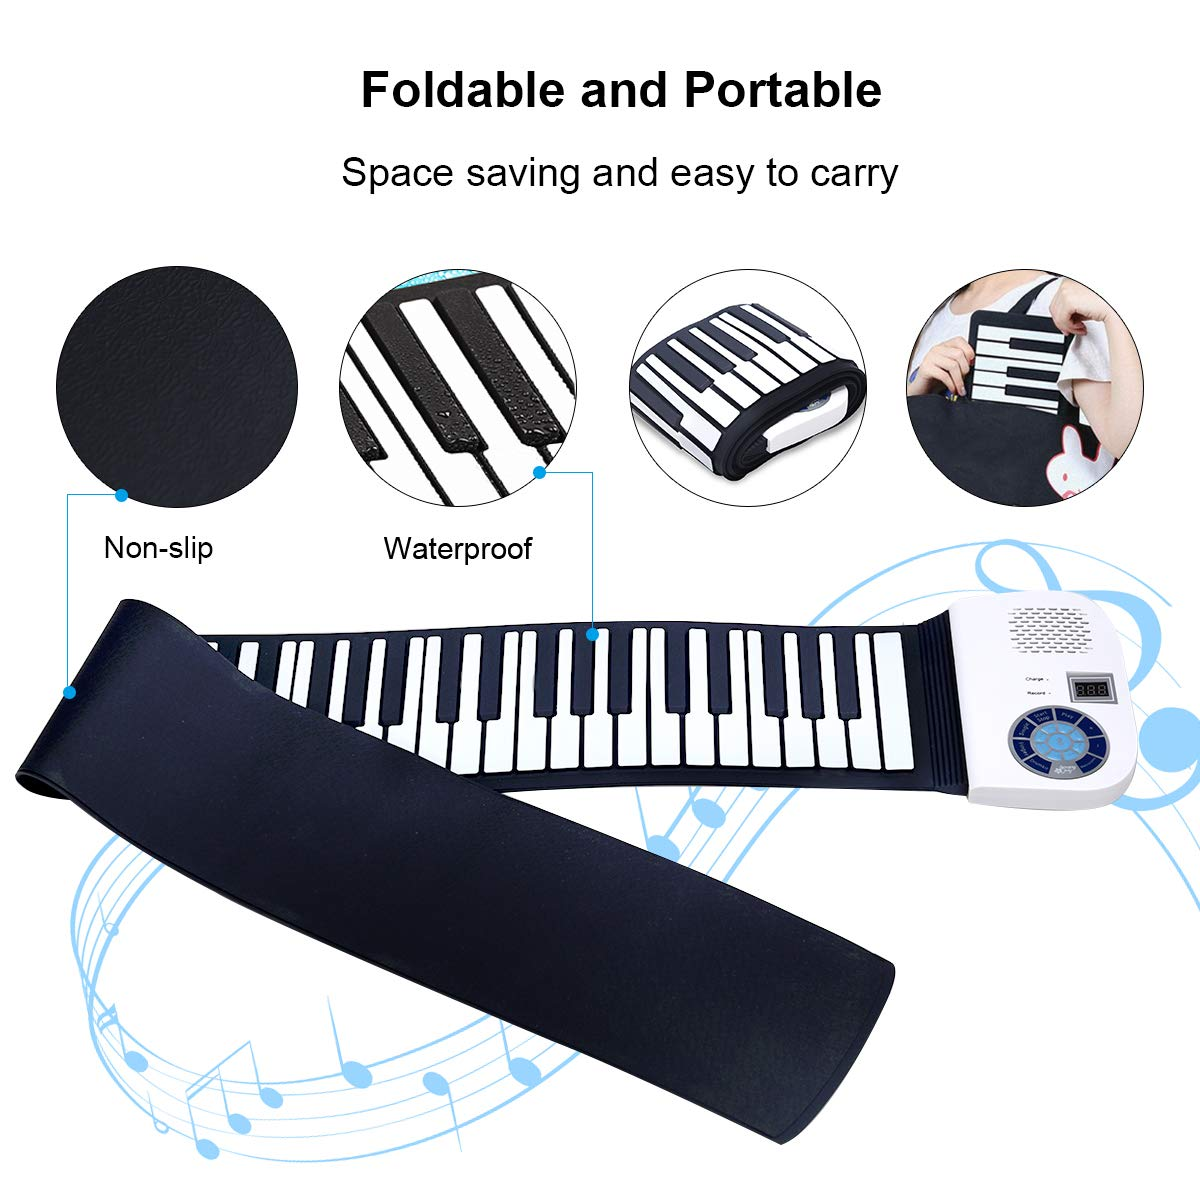 BABY JOY Roll Up Piano, Upgraded Electronic Piano Keyboard, Portable Piano w/Bluetooth, MP3 Headphone USB Input, MIDI OUT, 128 Rhythms, Record, Play, Volume Control (White, 88Keys) by BABY JOY (Image #5)